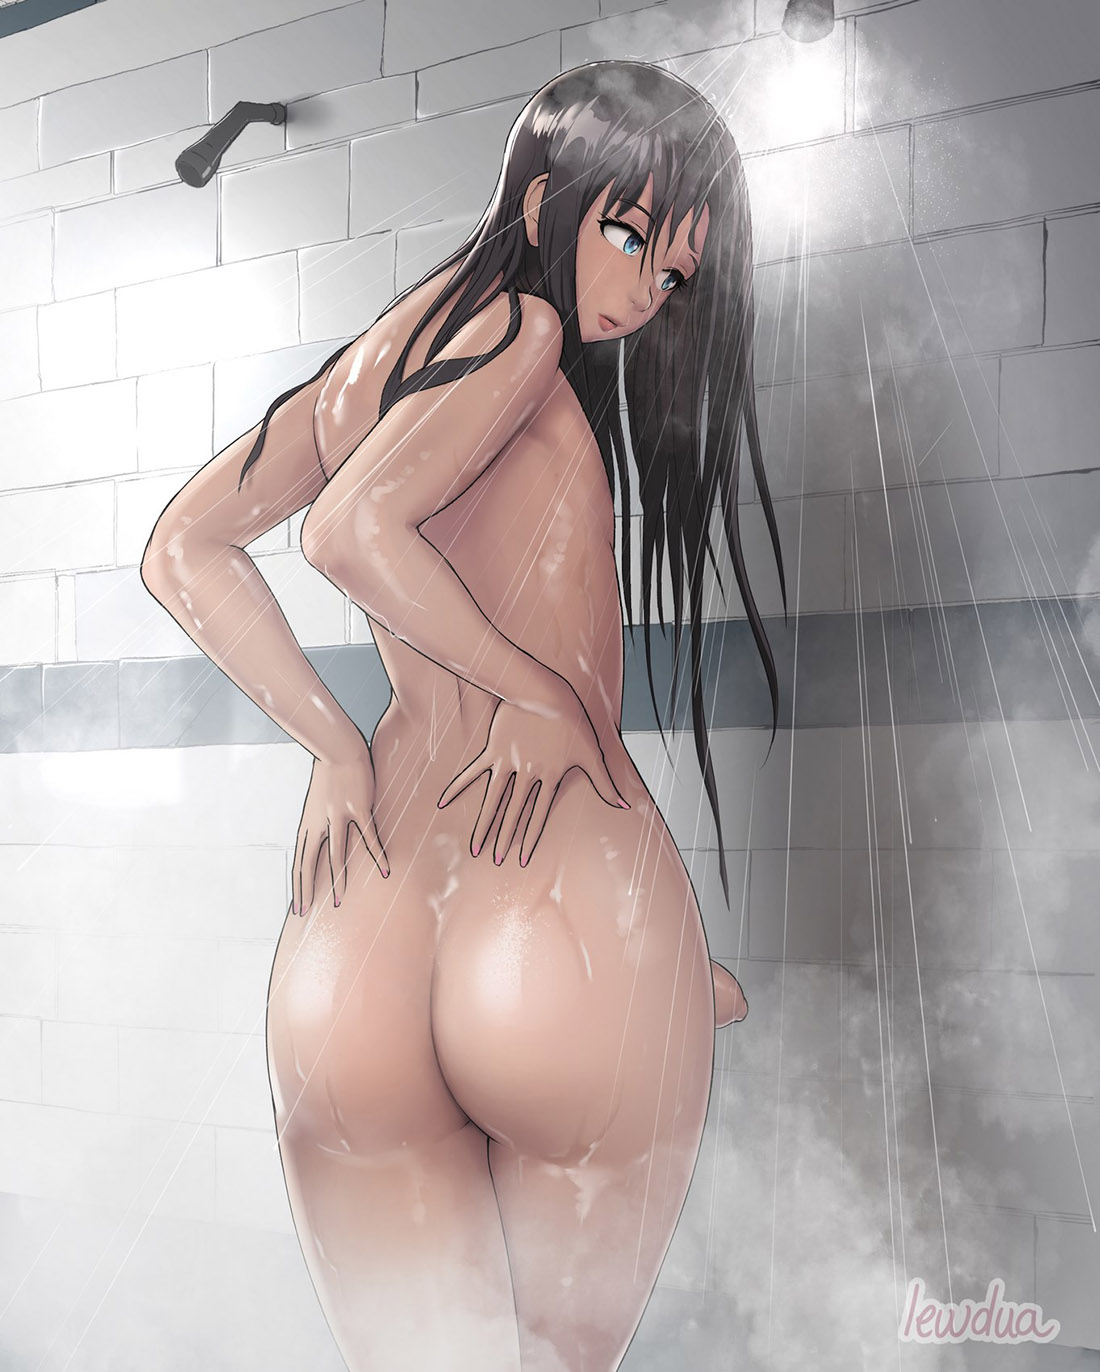 Alice in the Shower [Lewdua] comic